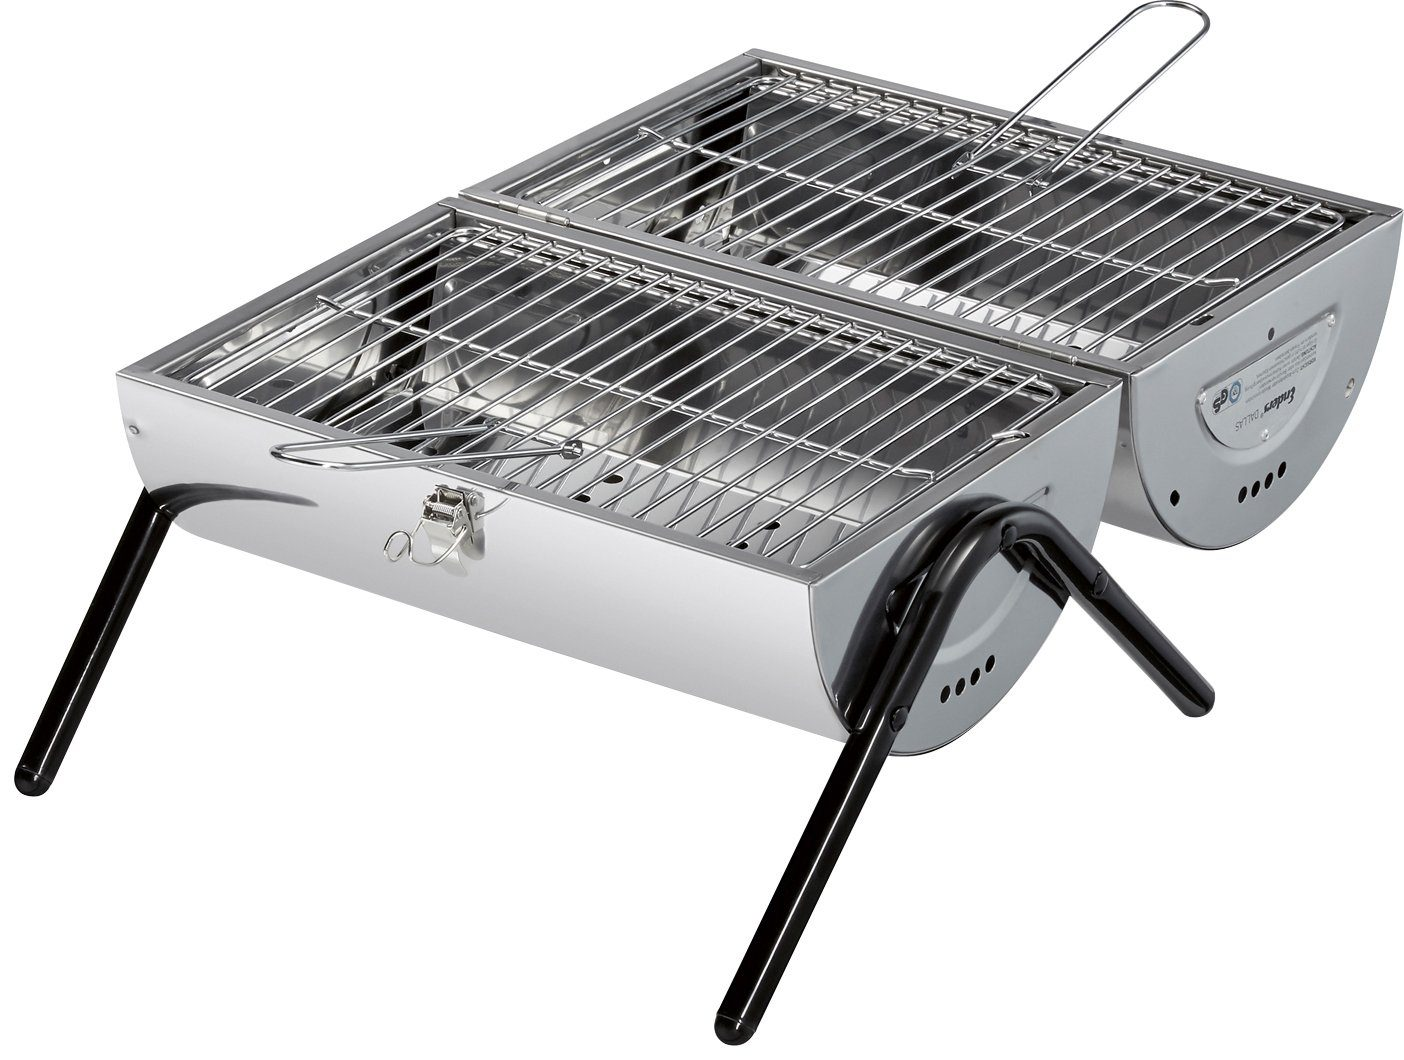 Enders Gasgrill Kansas 4 Sik Profi Turbo : Enders guss rost für gasgrill boston brenner gourmet bbq